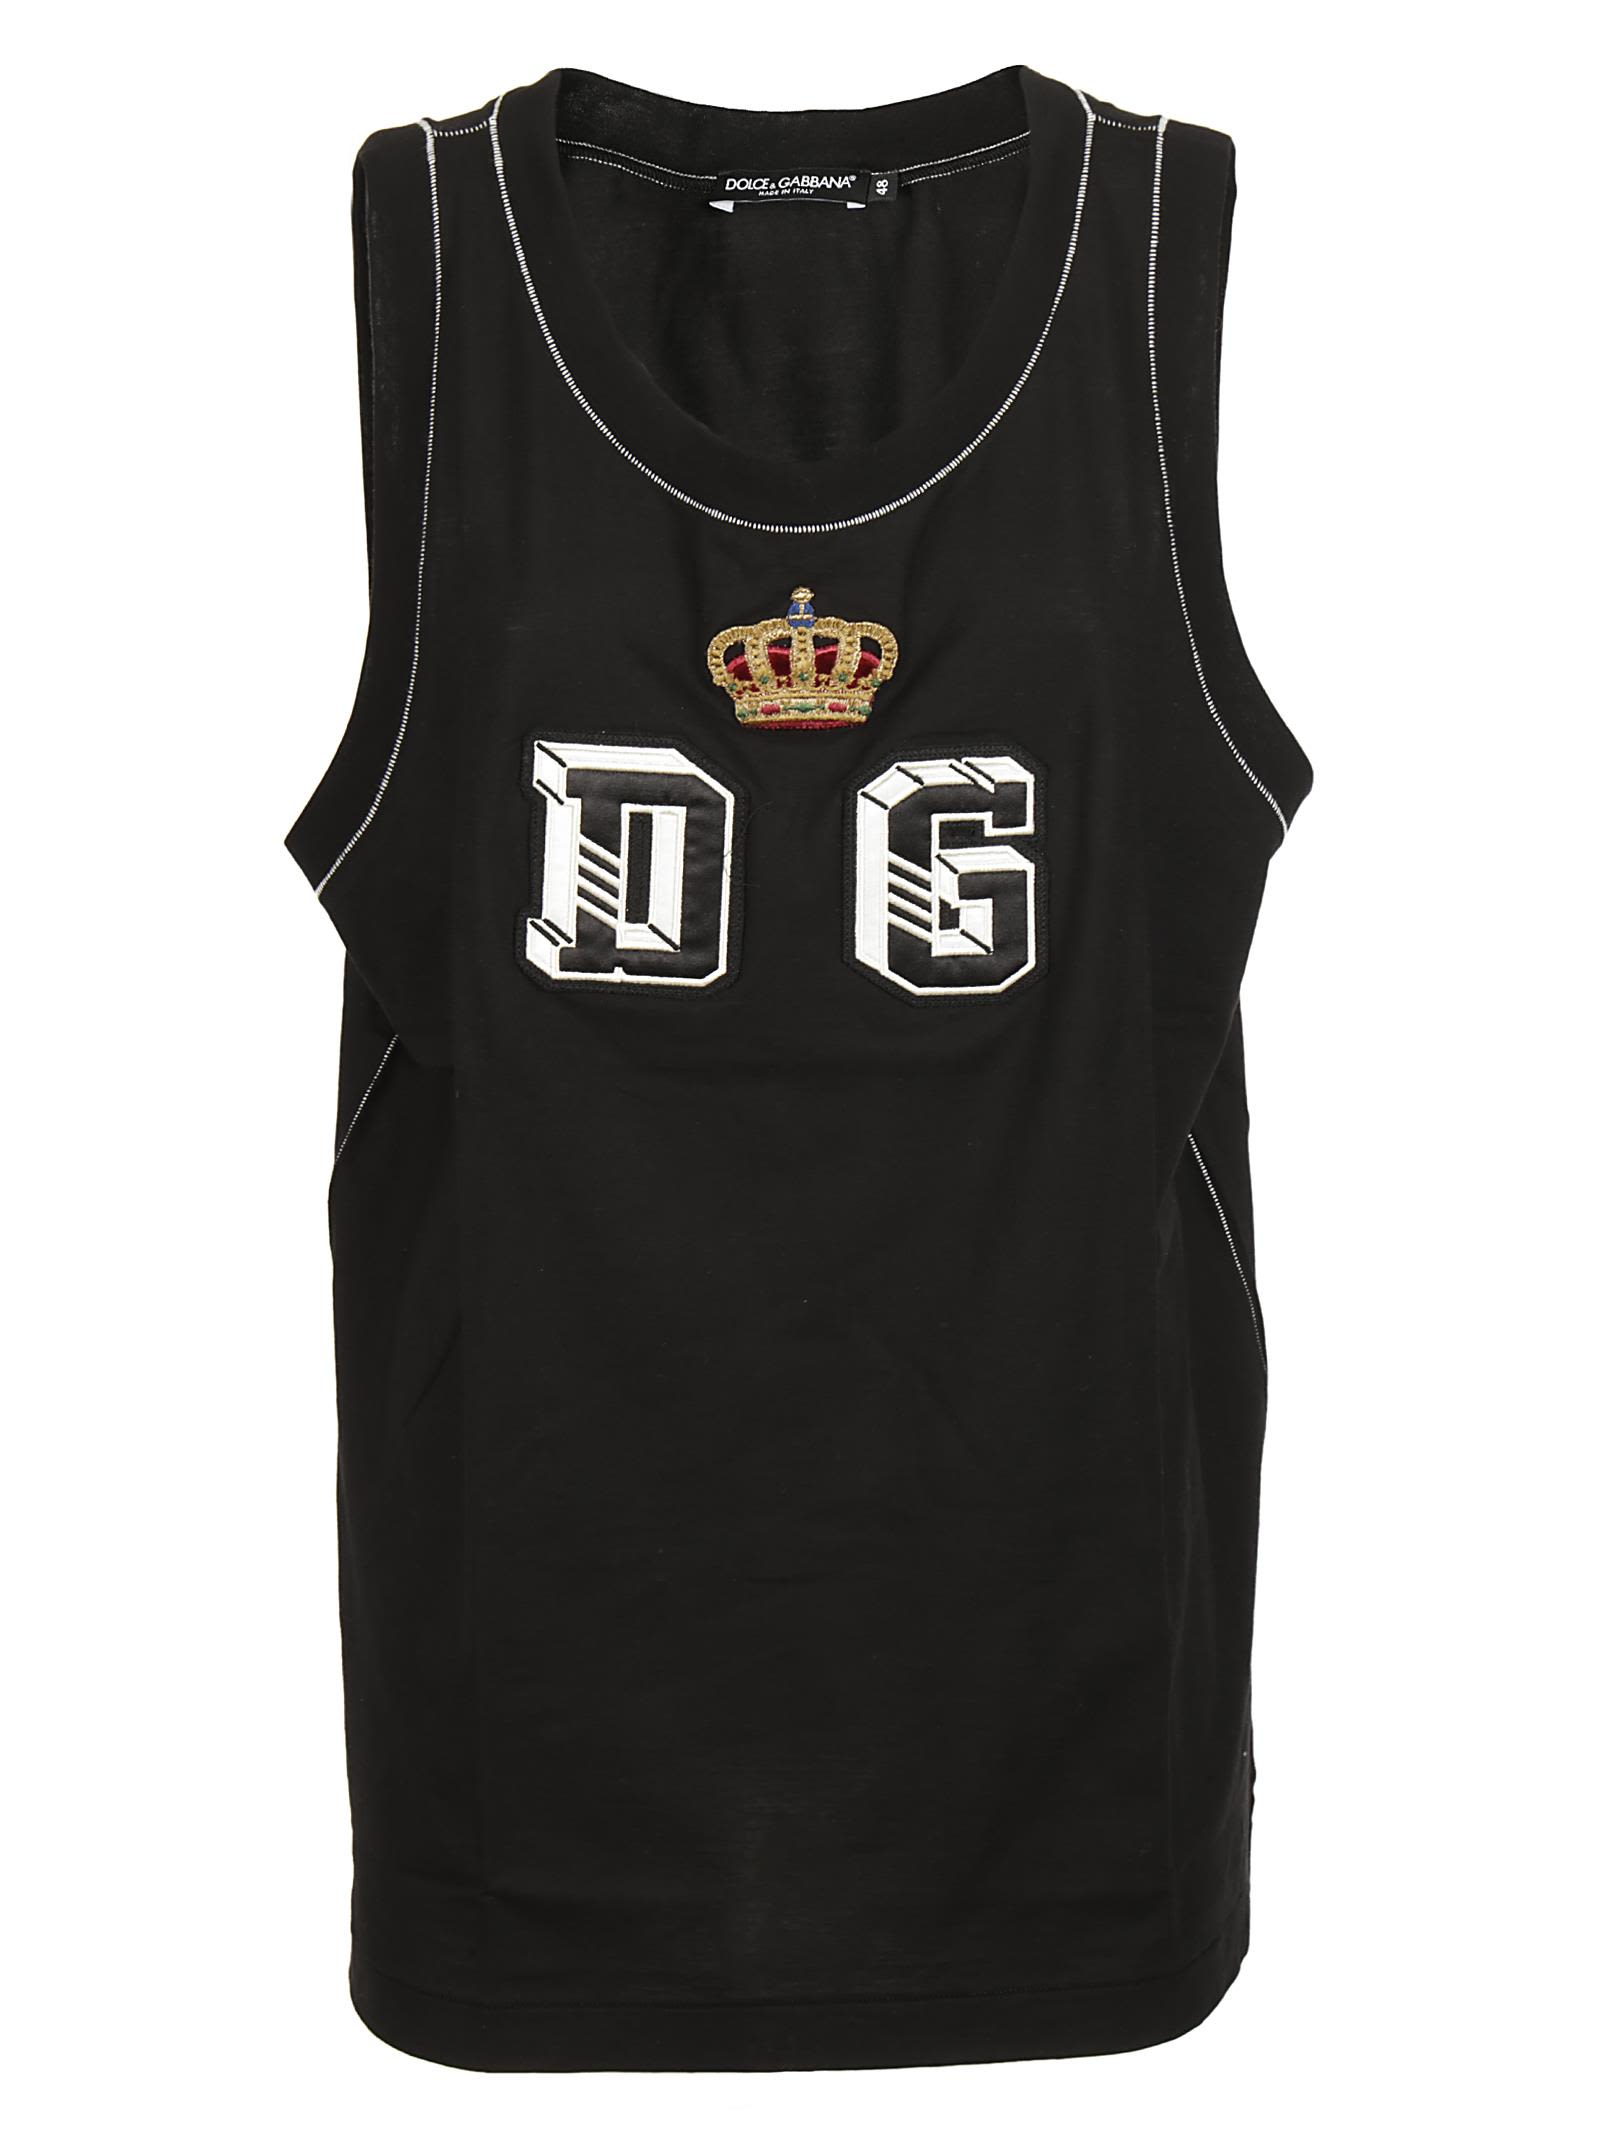 Dolce & Gabbana Logo Embroidered Tank Top